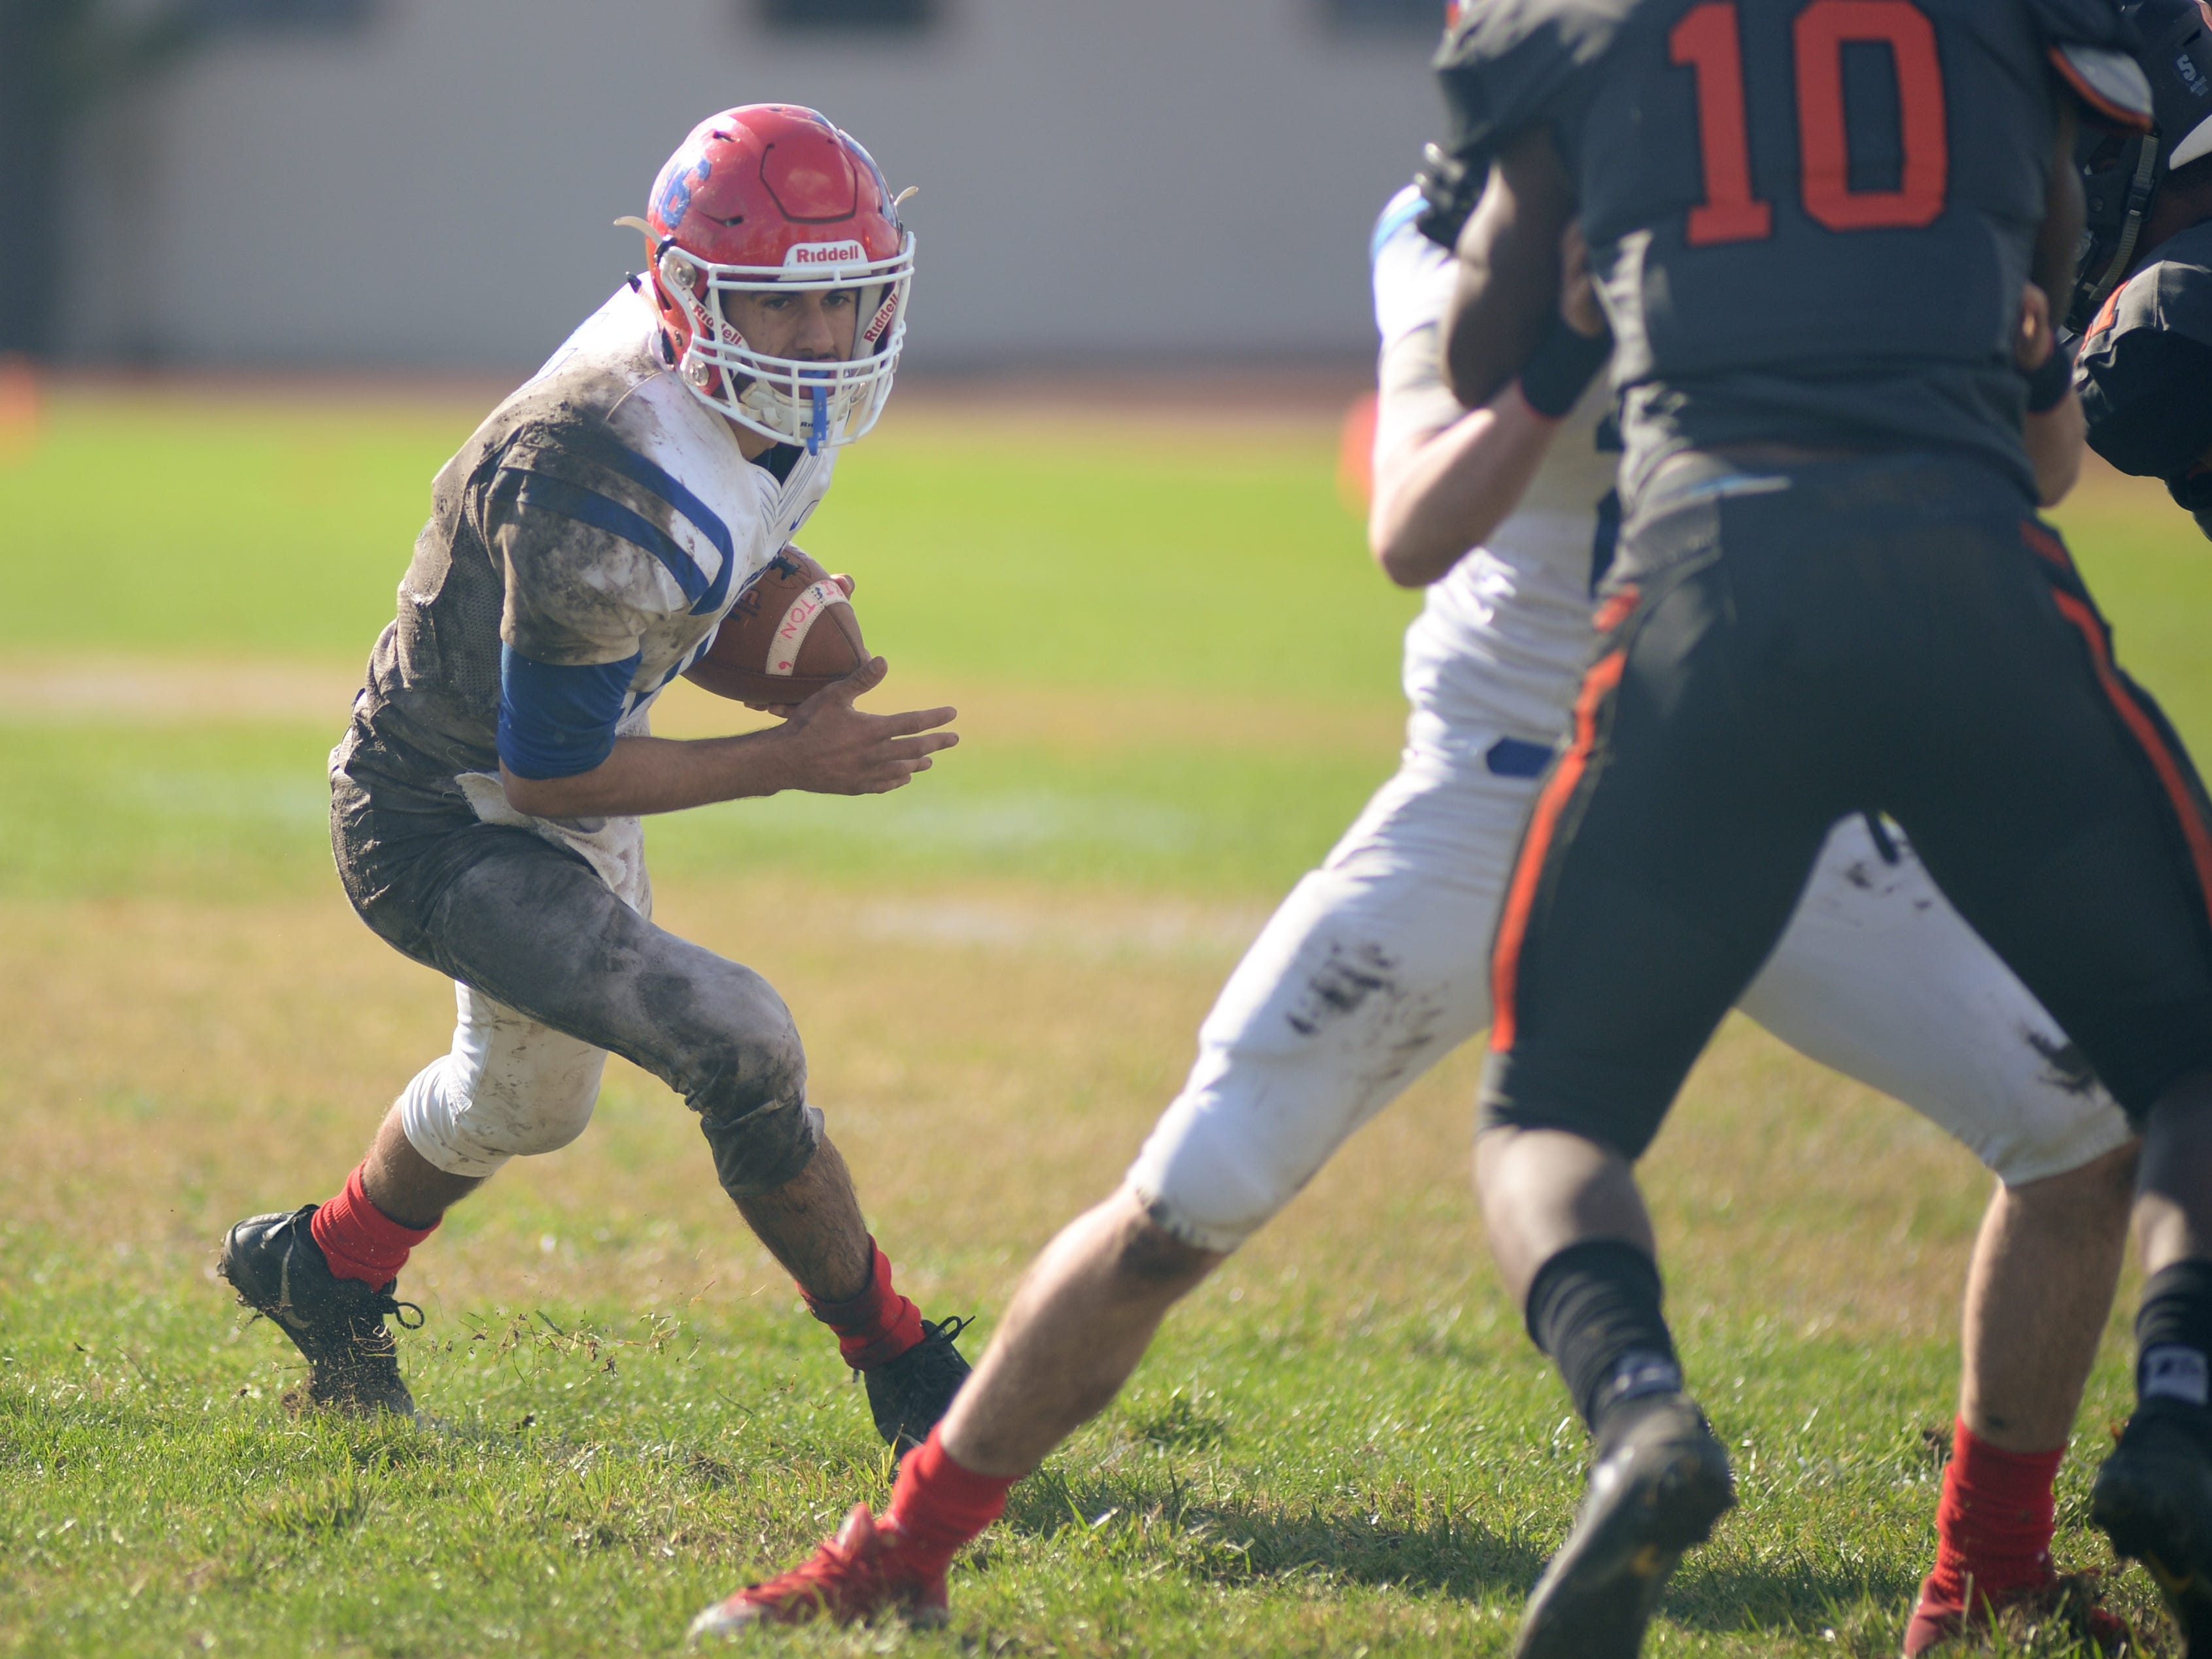 Triton's Geff Giancaterino carries the ball during Saturday's South Jersey Group 3 first round game against Woodrow Wilson, at Woodrow Wilson High School, Nov. 3, 2018.